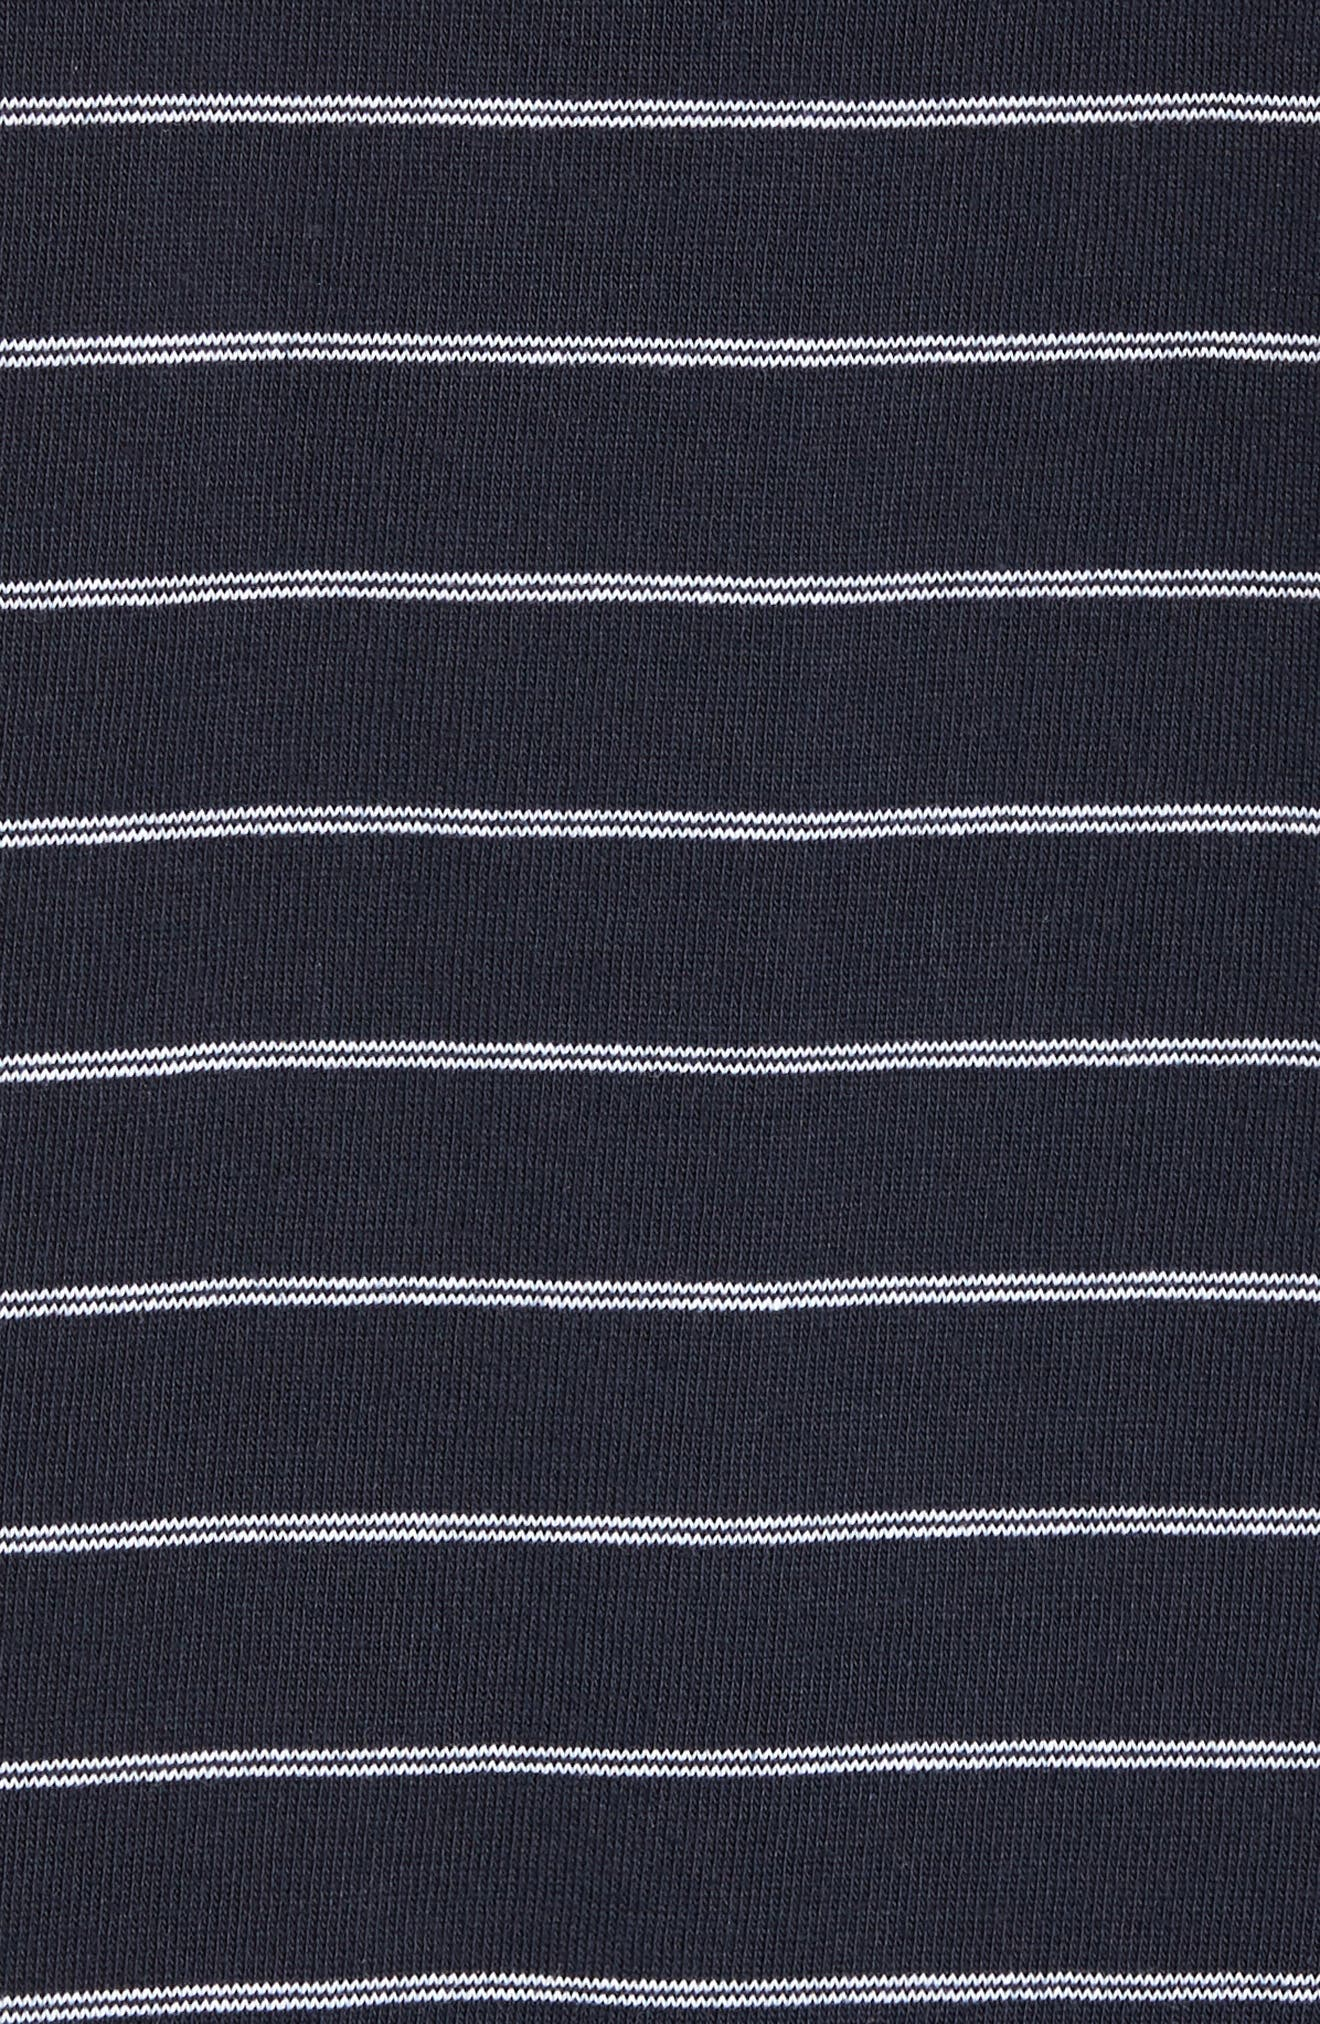 Alternate Image 5  - Theory Relaxed Stripe Henley